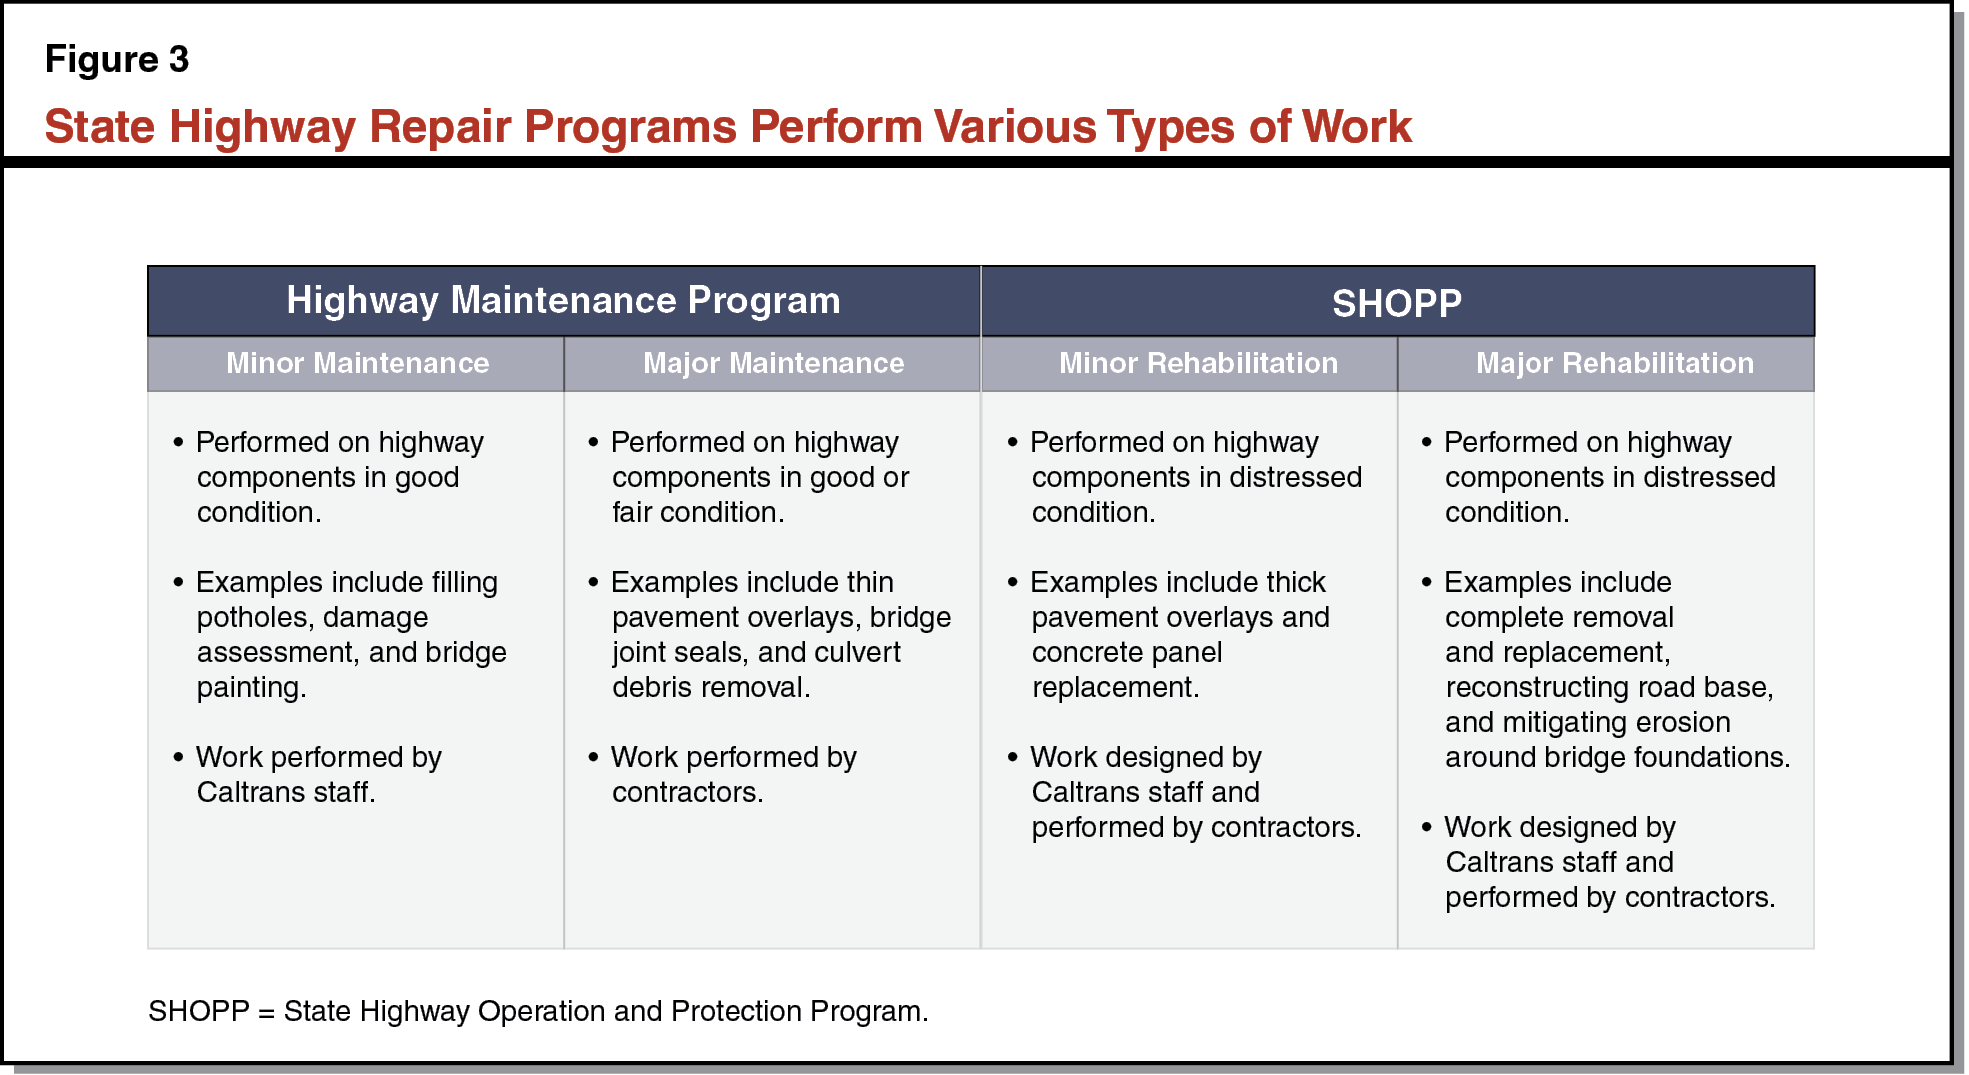 Figure 3 - State Highway Repair Programs Perform Various Types of Work